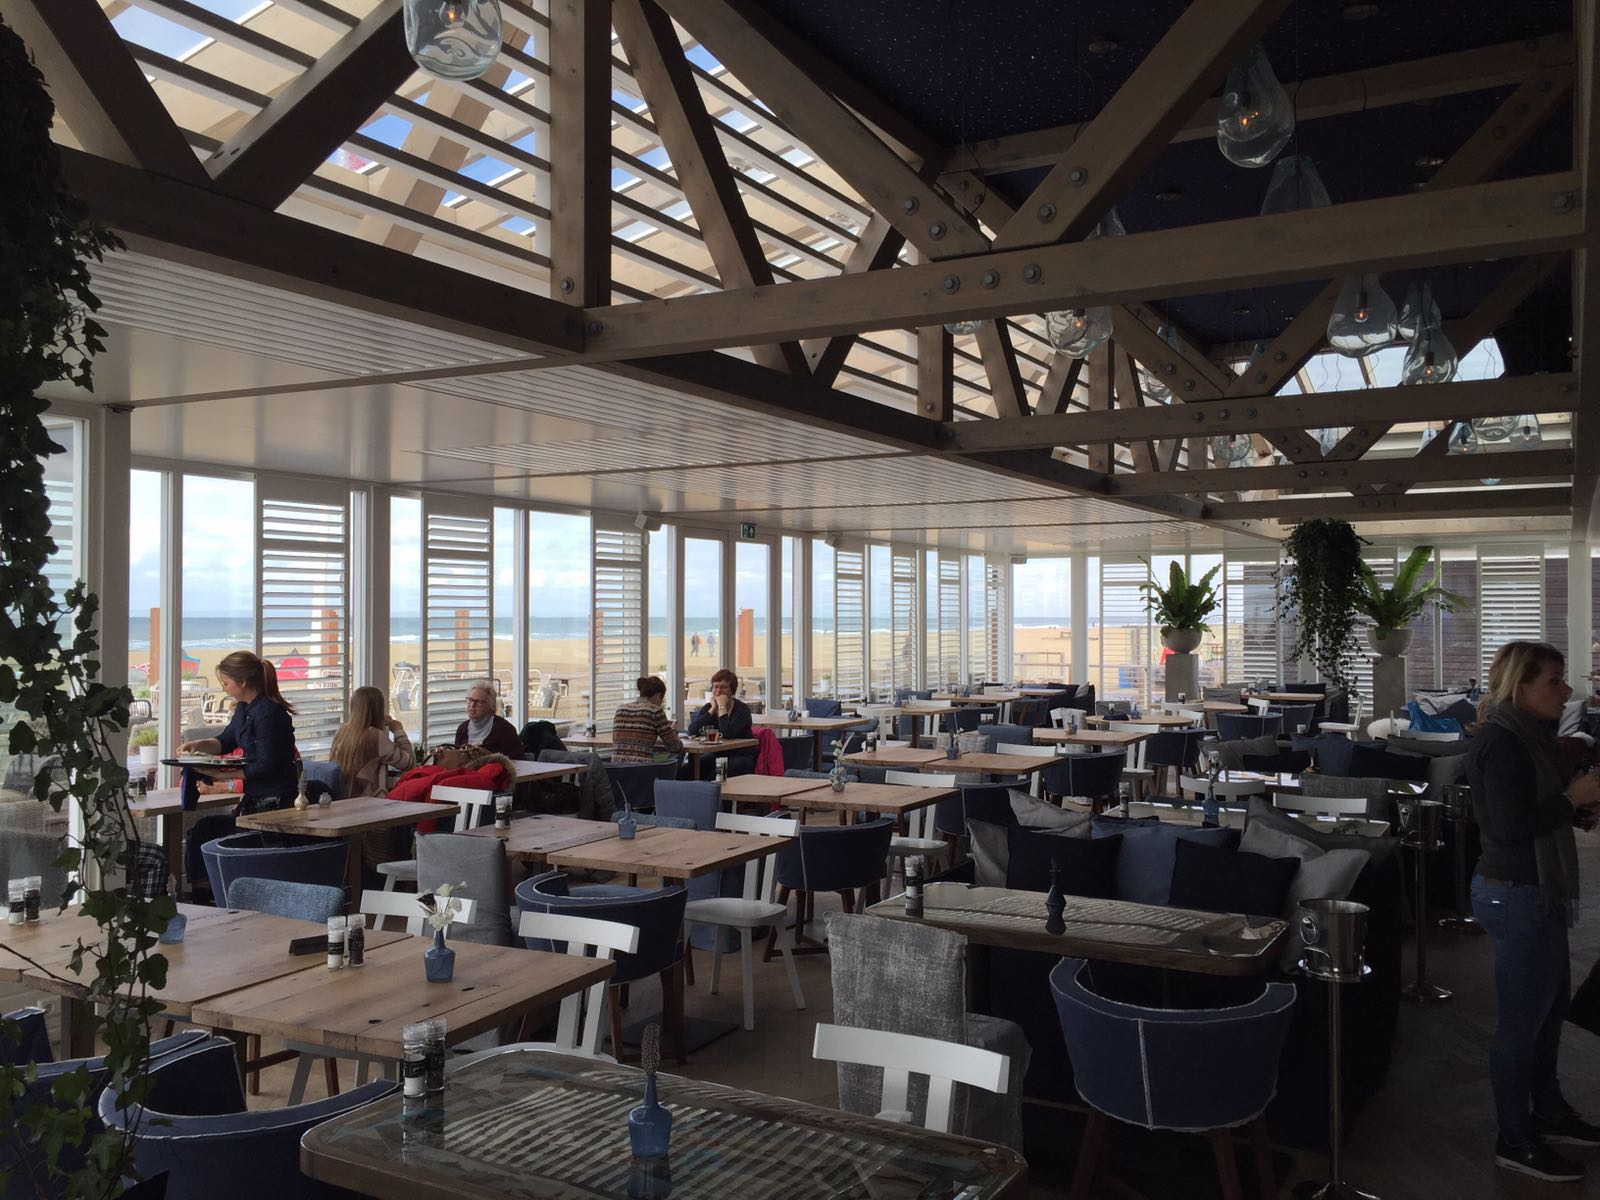 shutters at beach restaurant de waterreus | jasno